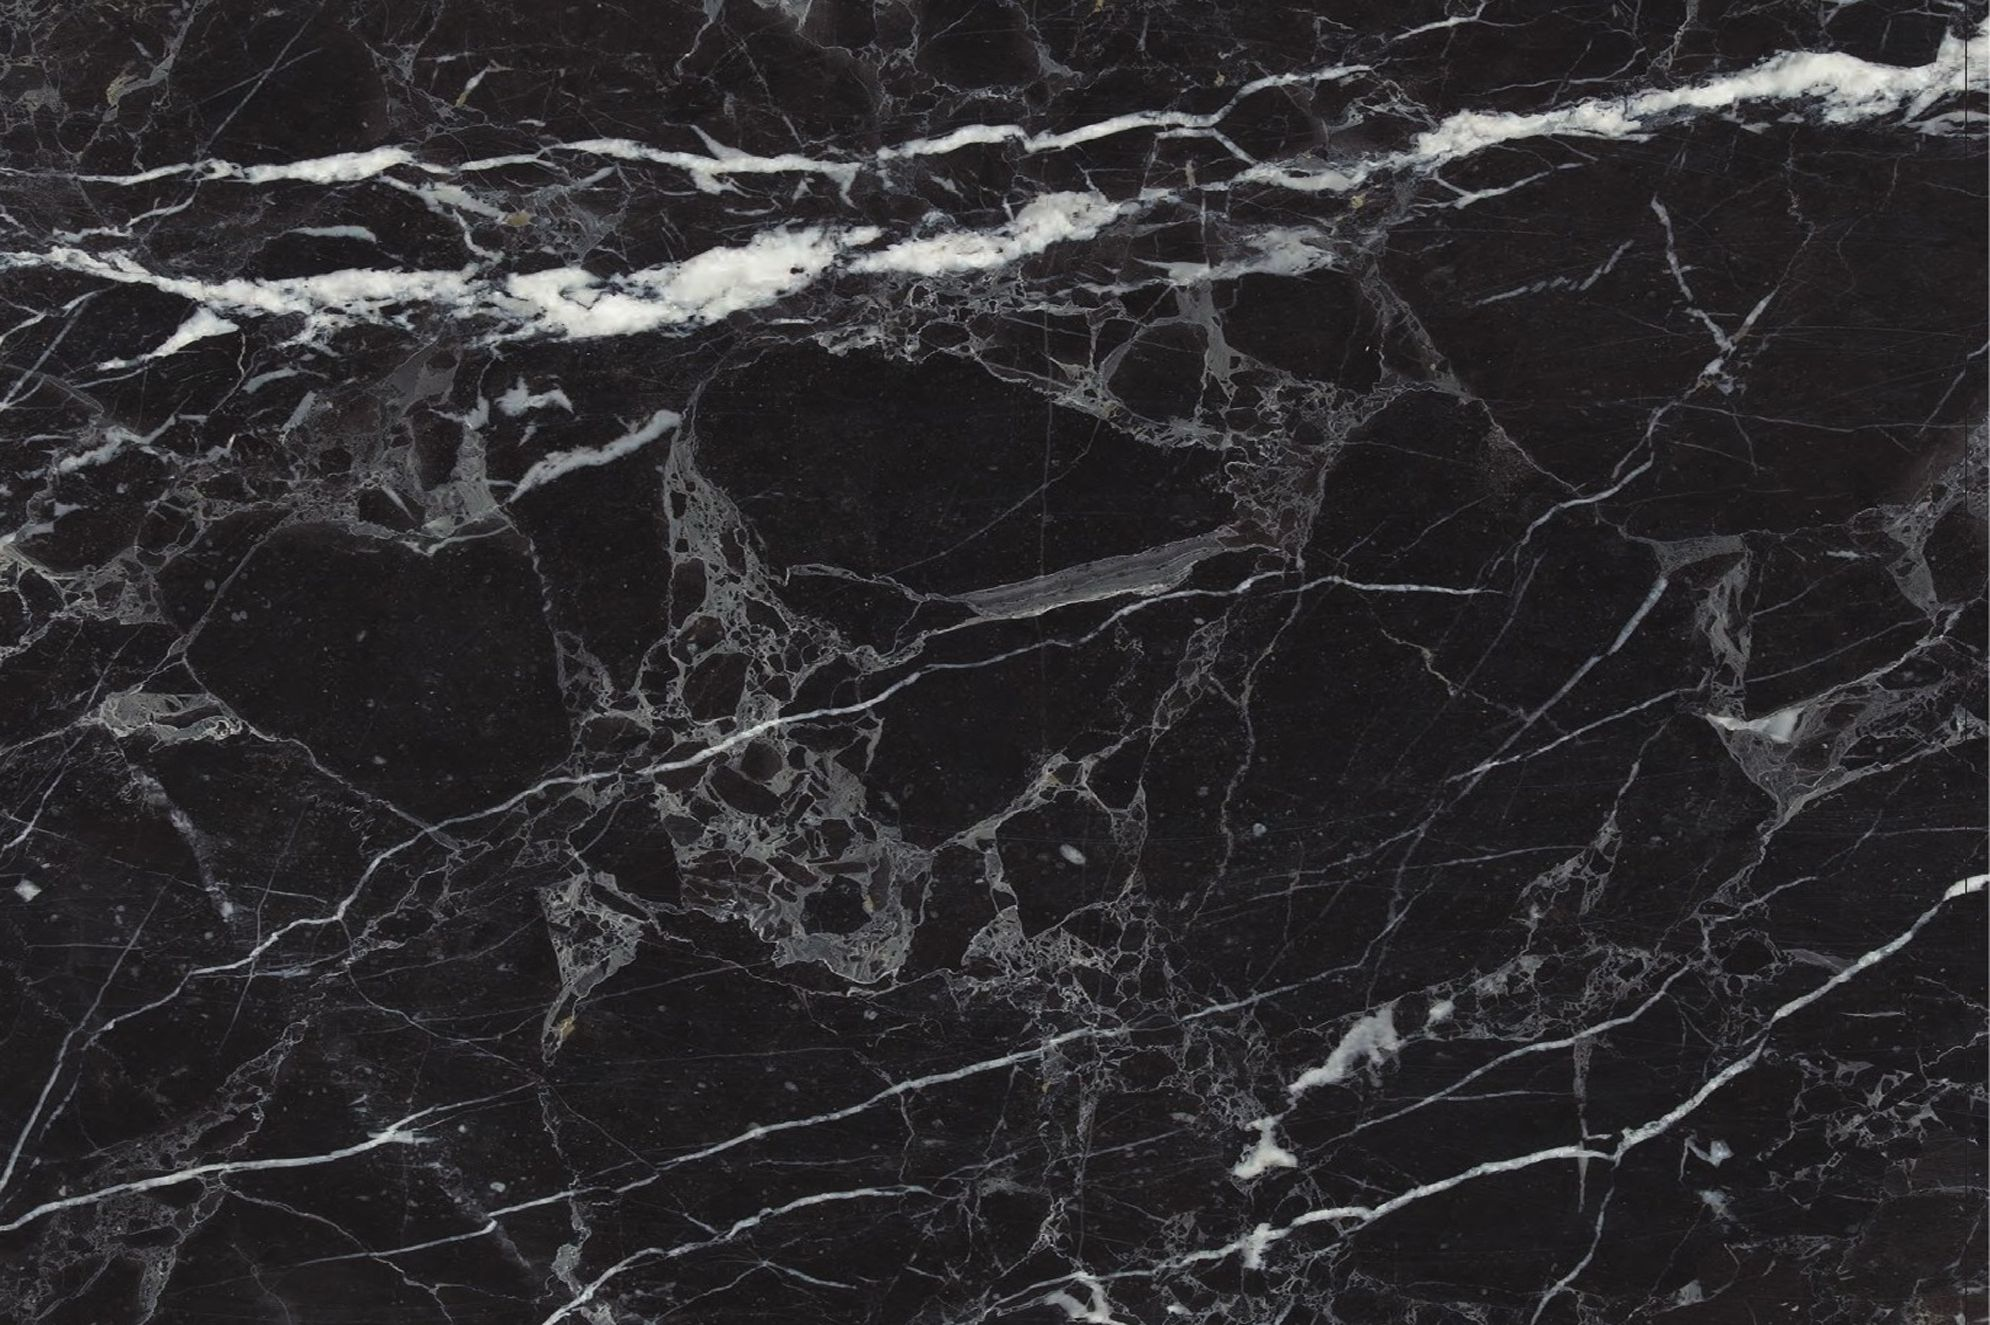 Black marble texture Material Buy Black Marble Macbook Air By Melbourne Girl At Casetify Pinterest Pin By Liz Korutz On Texture Material Pinterest Marble Black